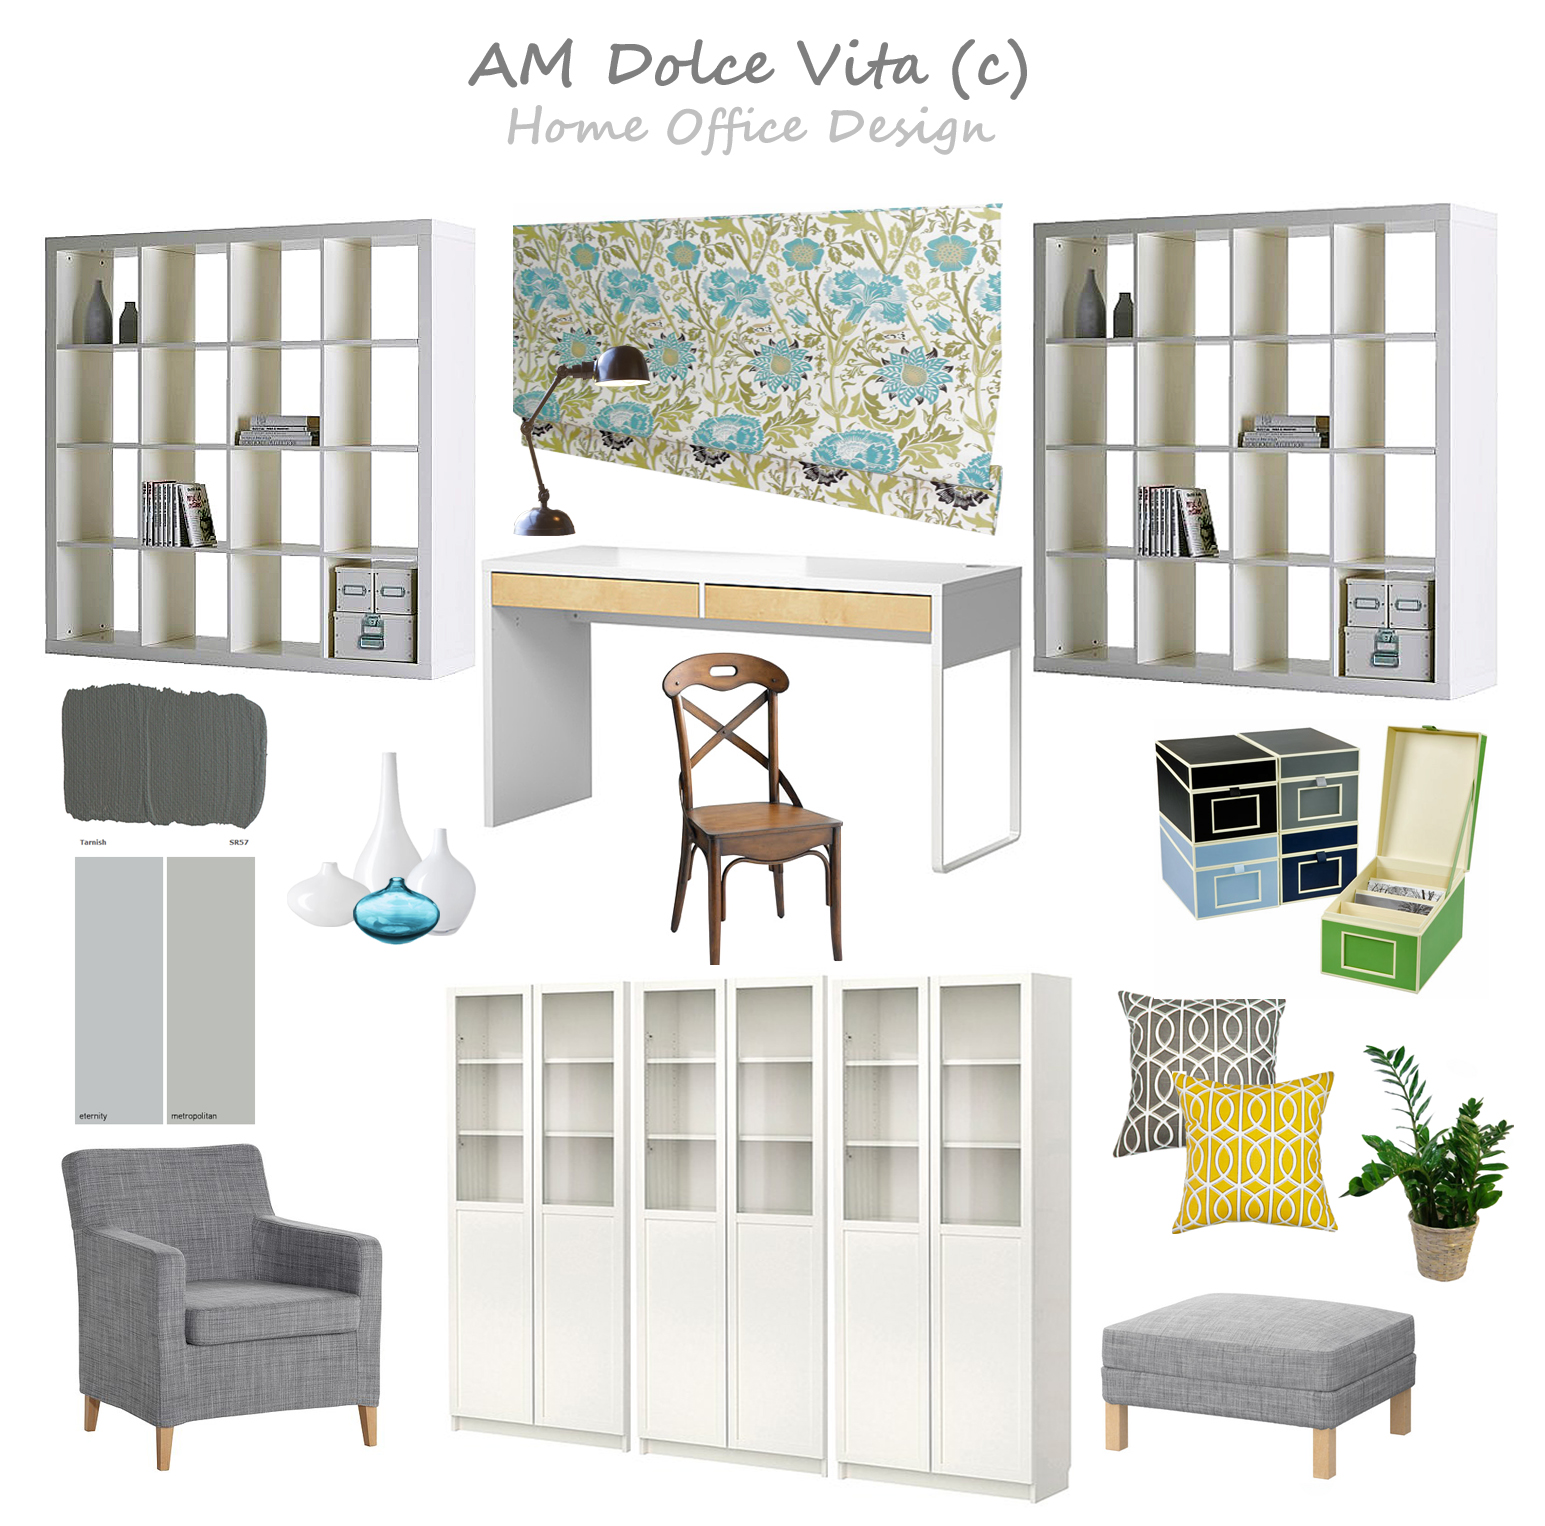 AM Dolce Vita: Next Project...Home Office